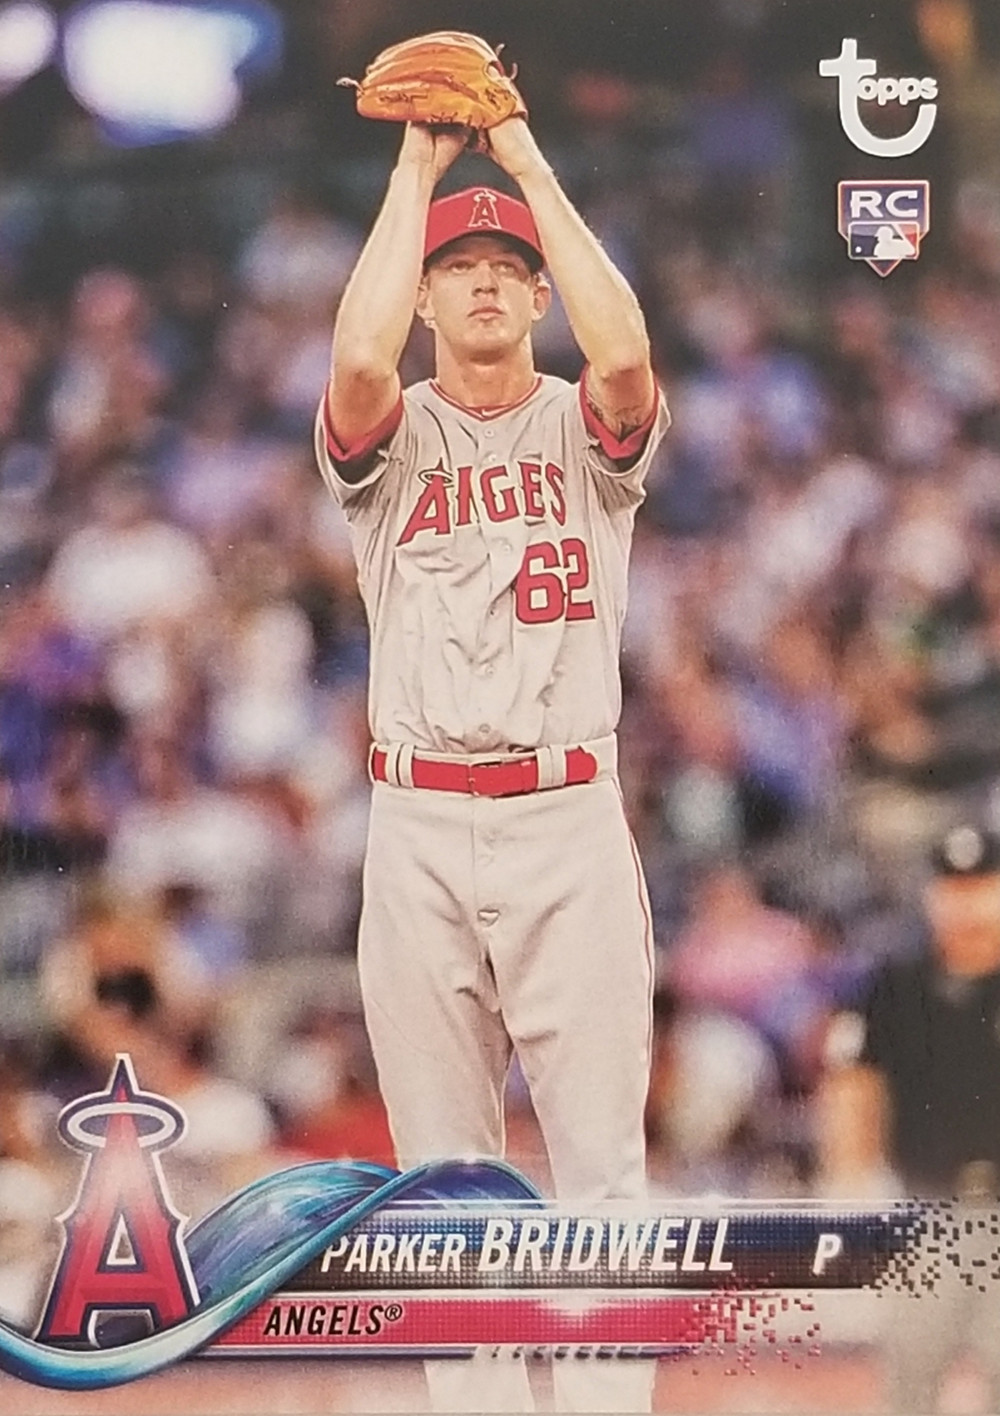 Parker Bidwell 2018 Topps RC Vintage Stock